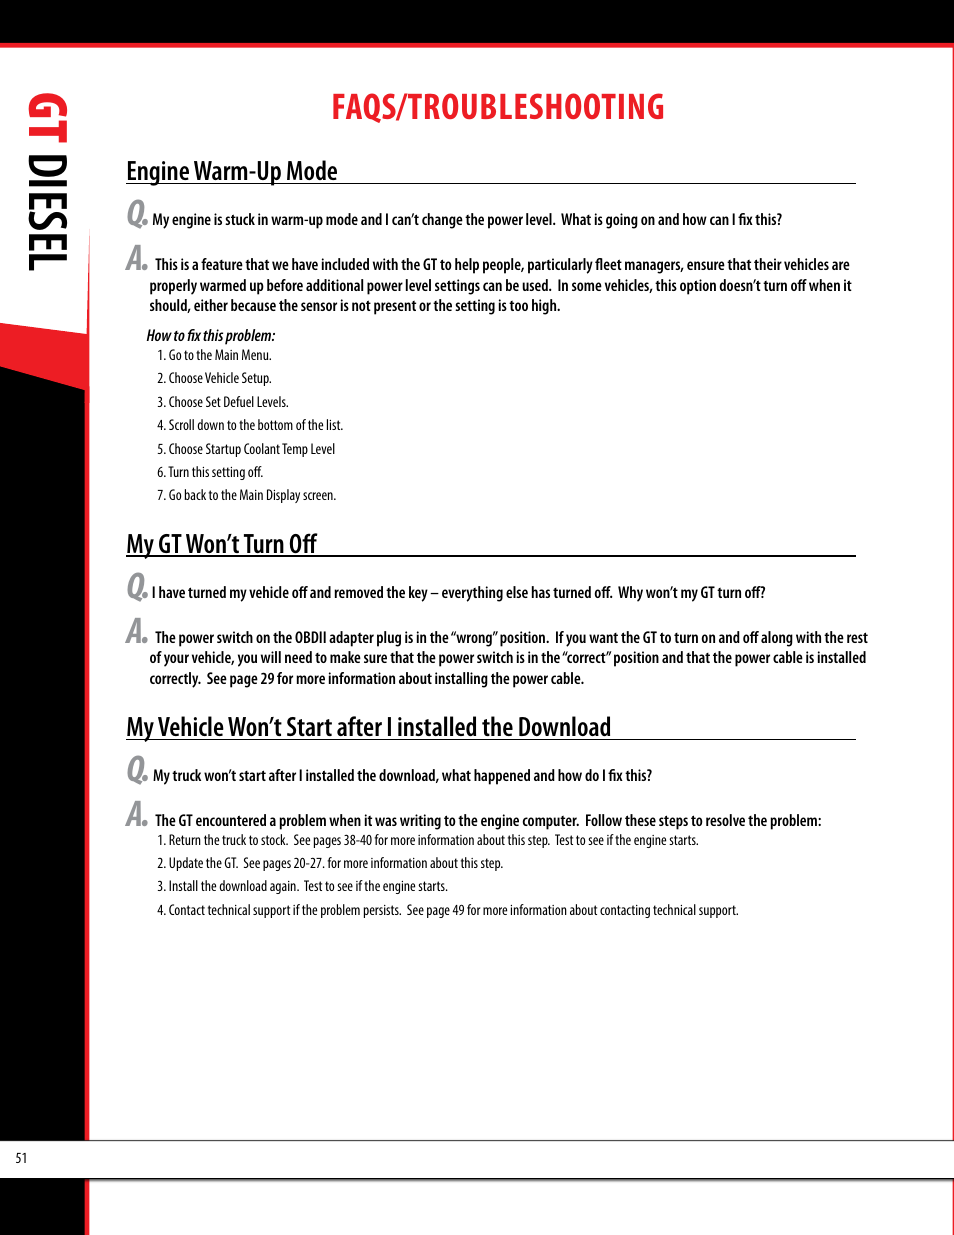 Bully Dog 40420 >> Gt diesel, Faqs/troubleshooting | Bully Dog 40420 gauge GT tuner User Manual | Page 52 / 54